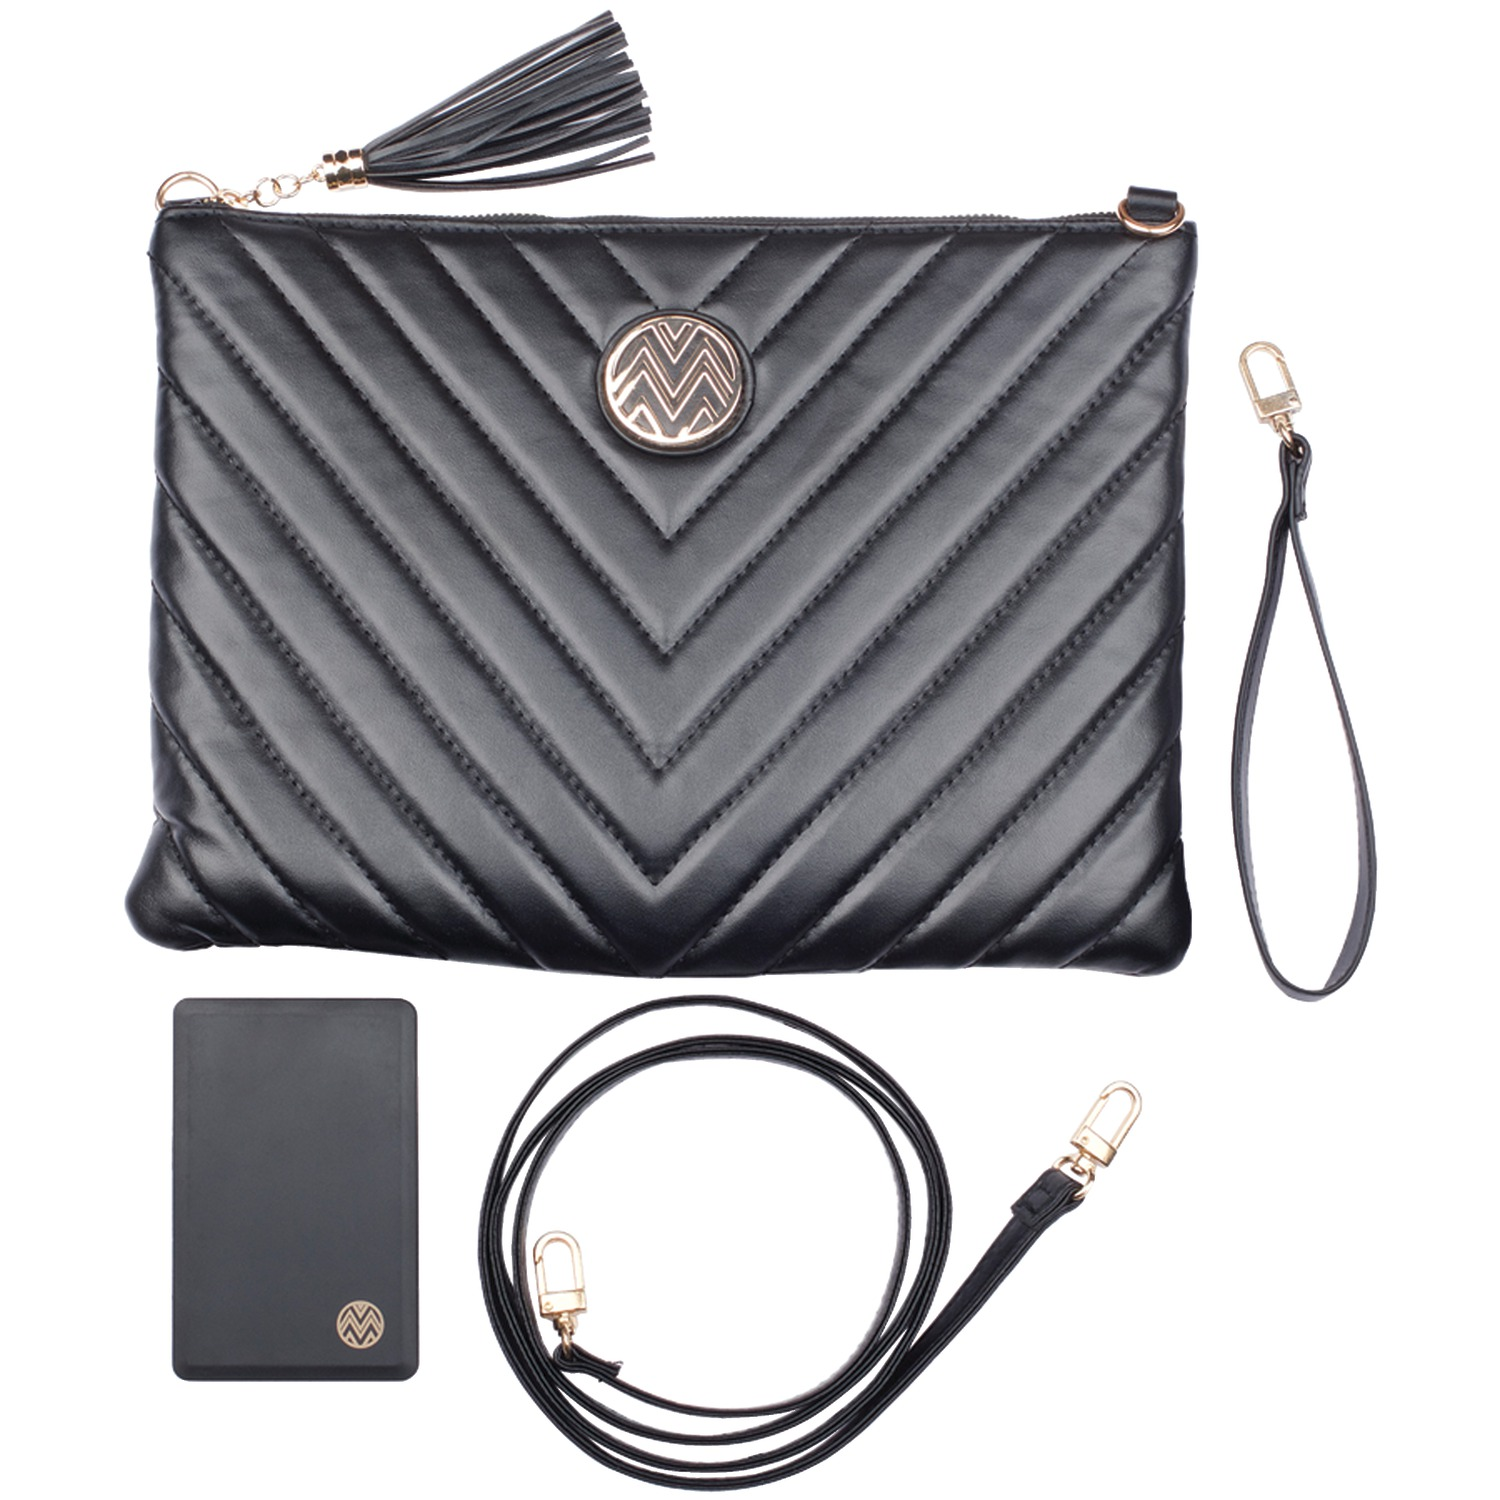 The Macbeth Collection MB-PC101-KIT Kitty Power Clutch